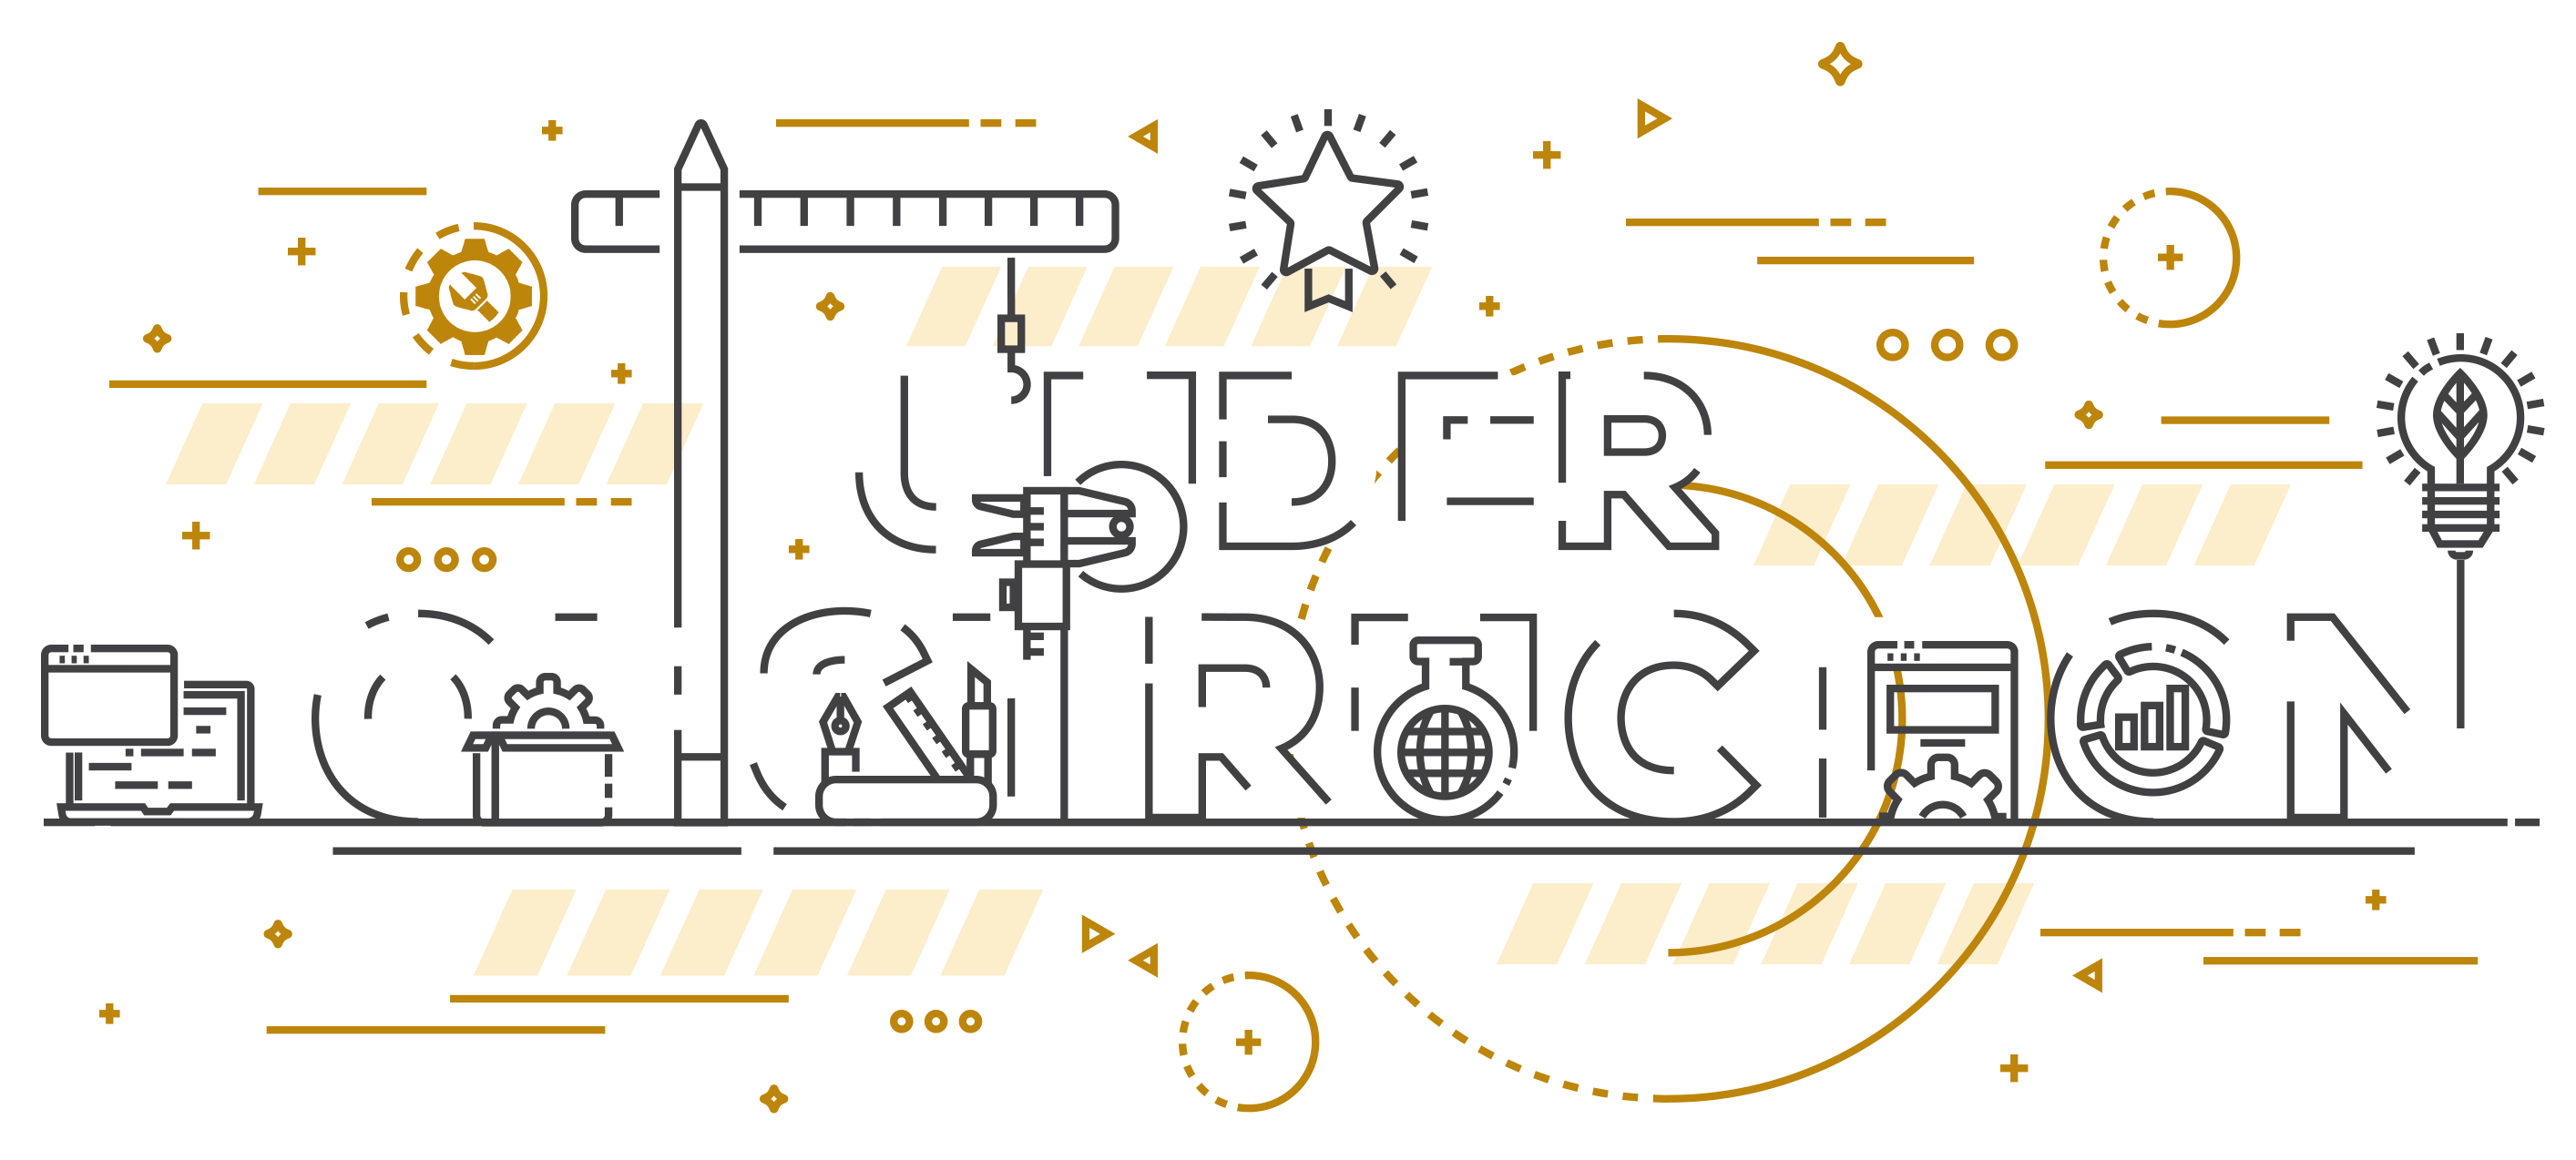 under_construction_text